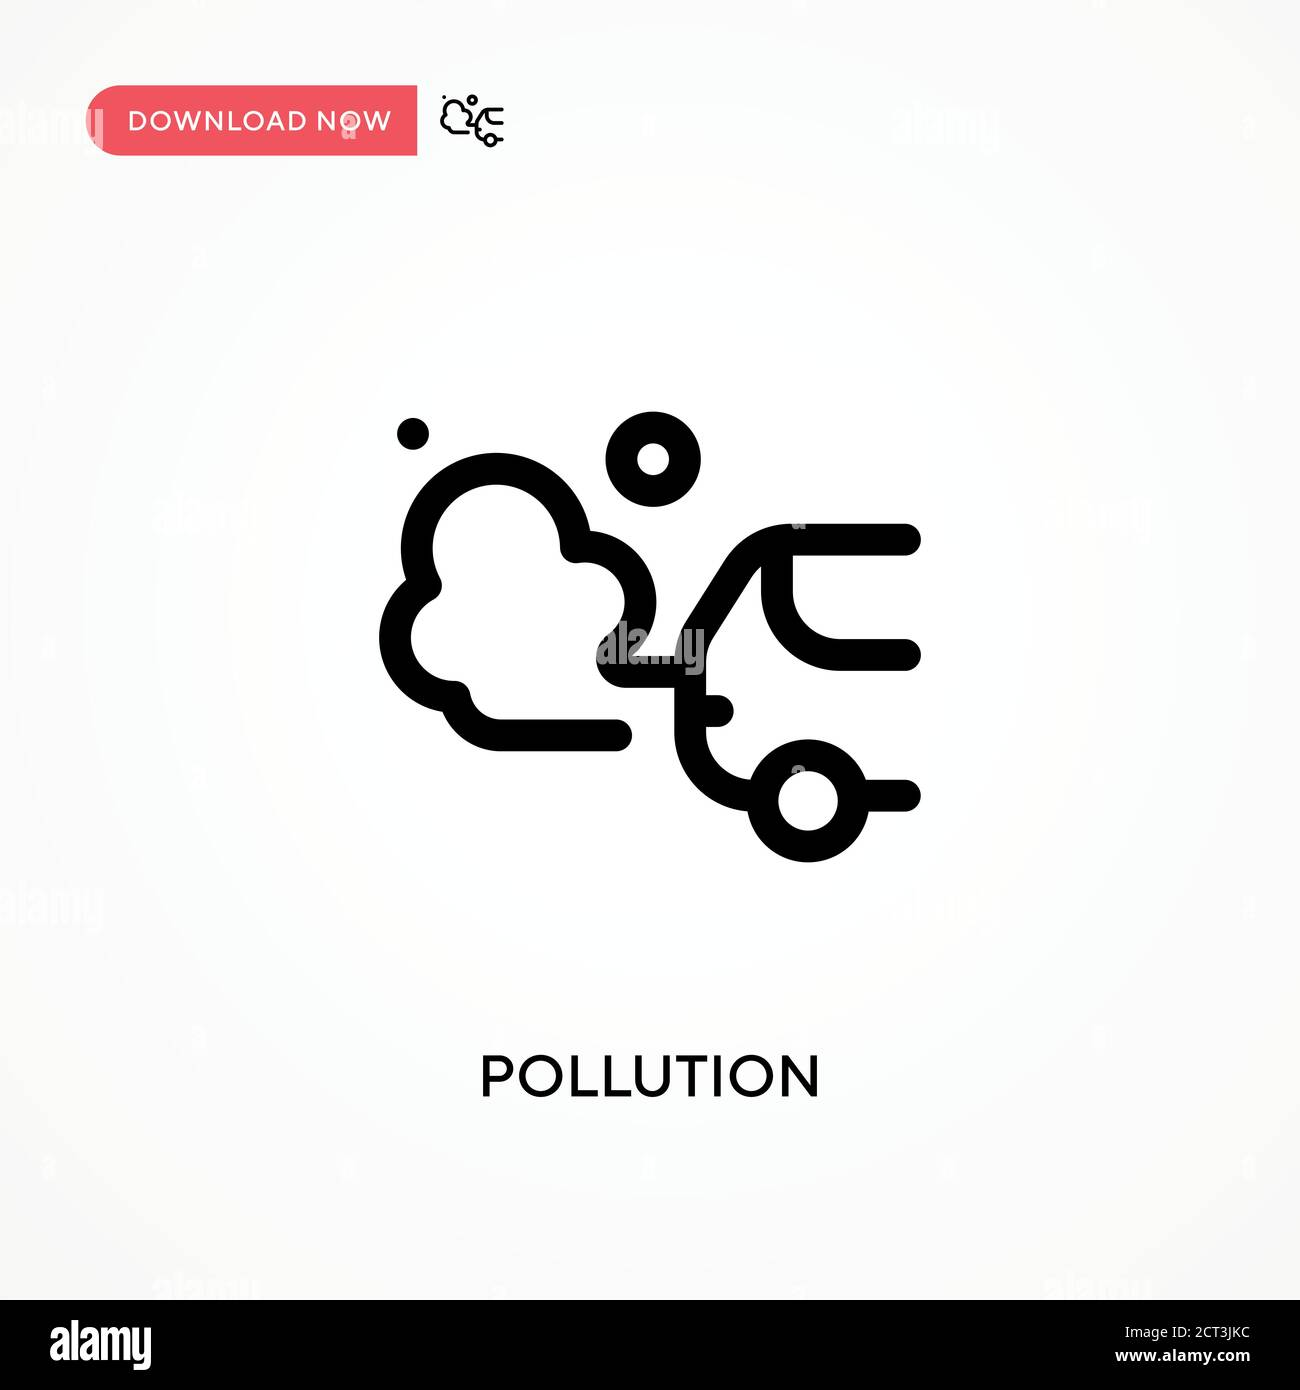 Pollution Simple vector icon. Modern, simple flat vector illustration for web site or mobile app Stock Vector